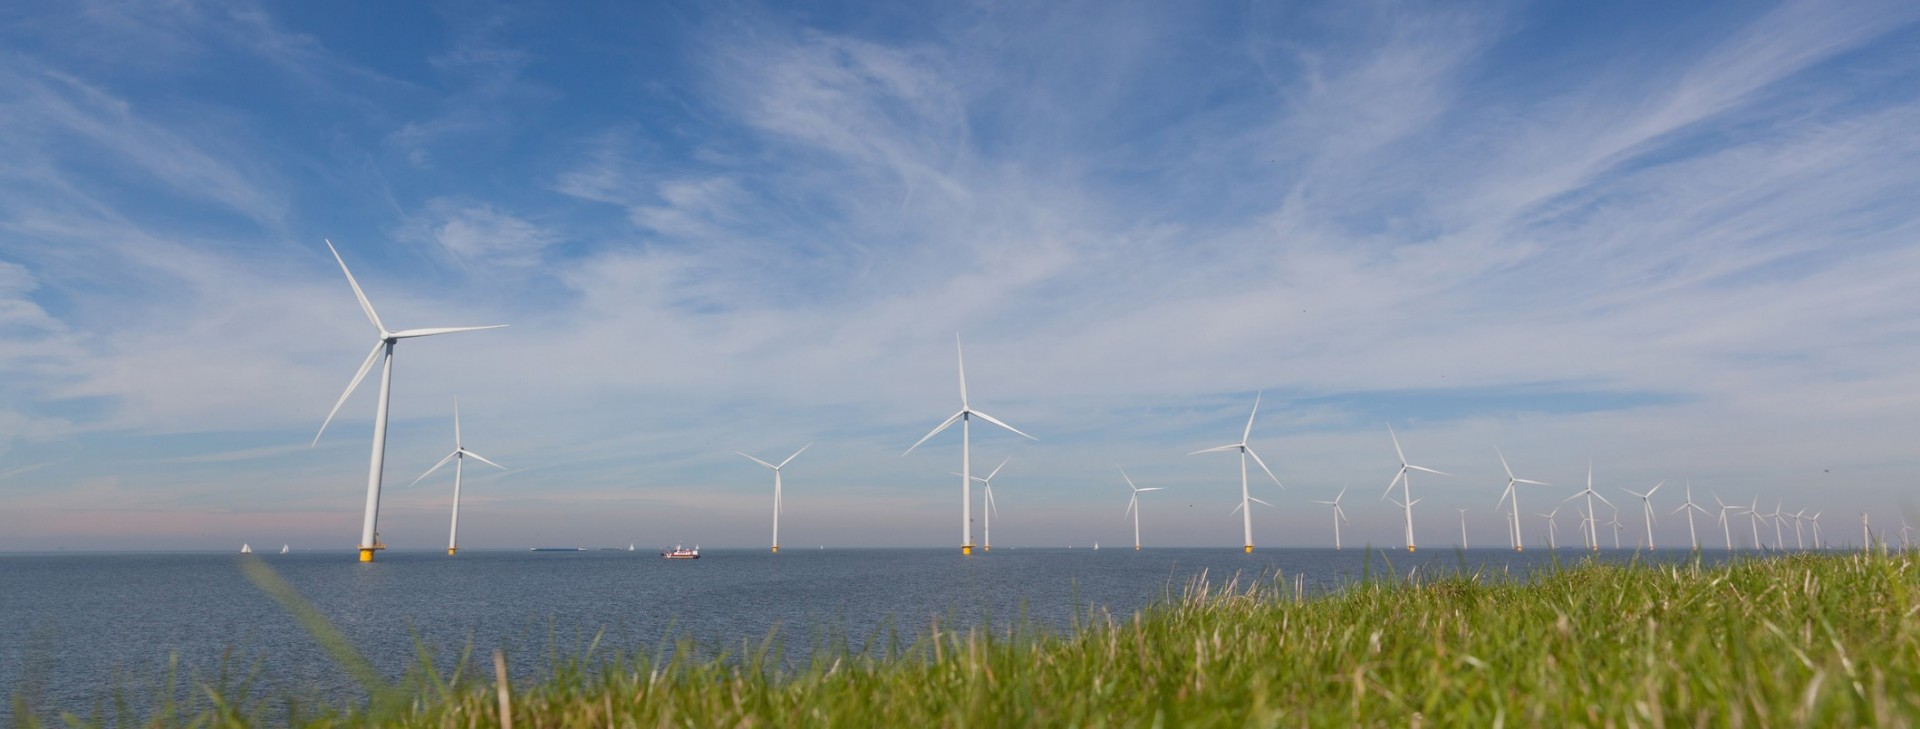 DOB_Academy_panorama-Introduction to Contracting in Offshore Wind